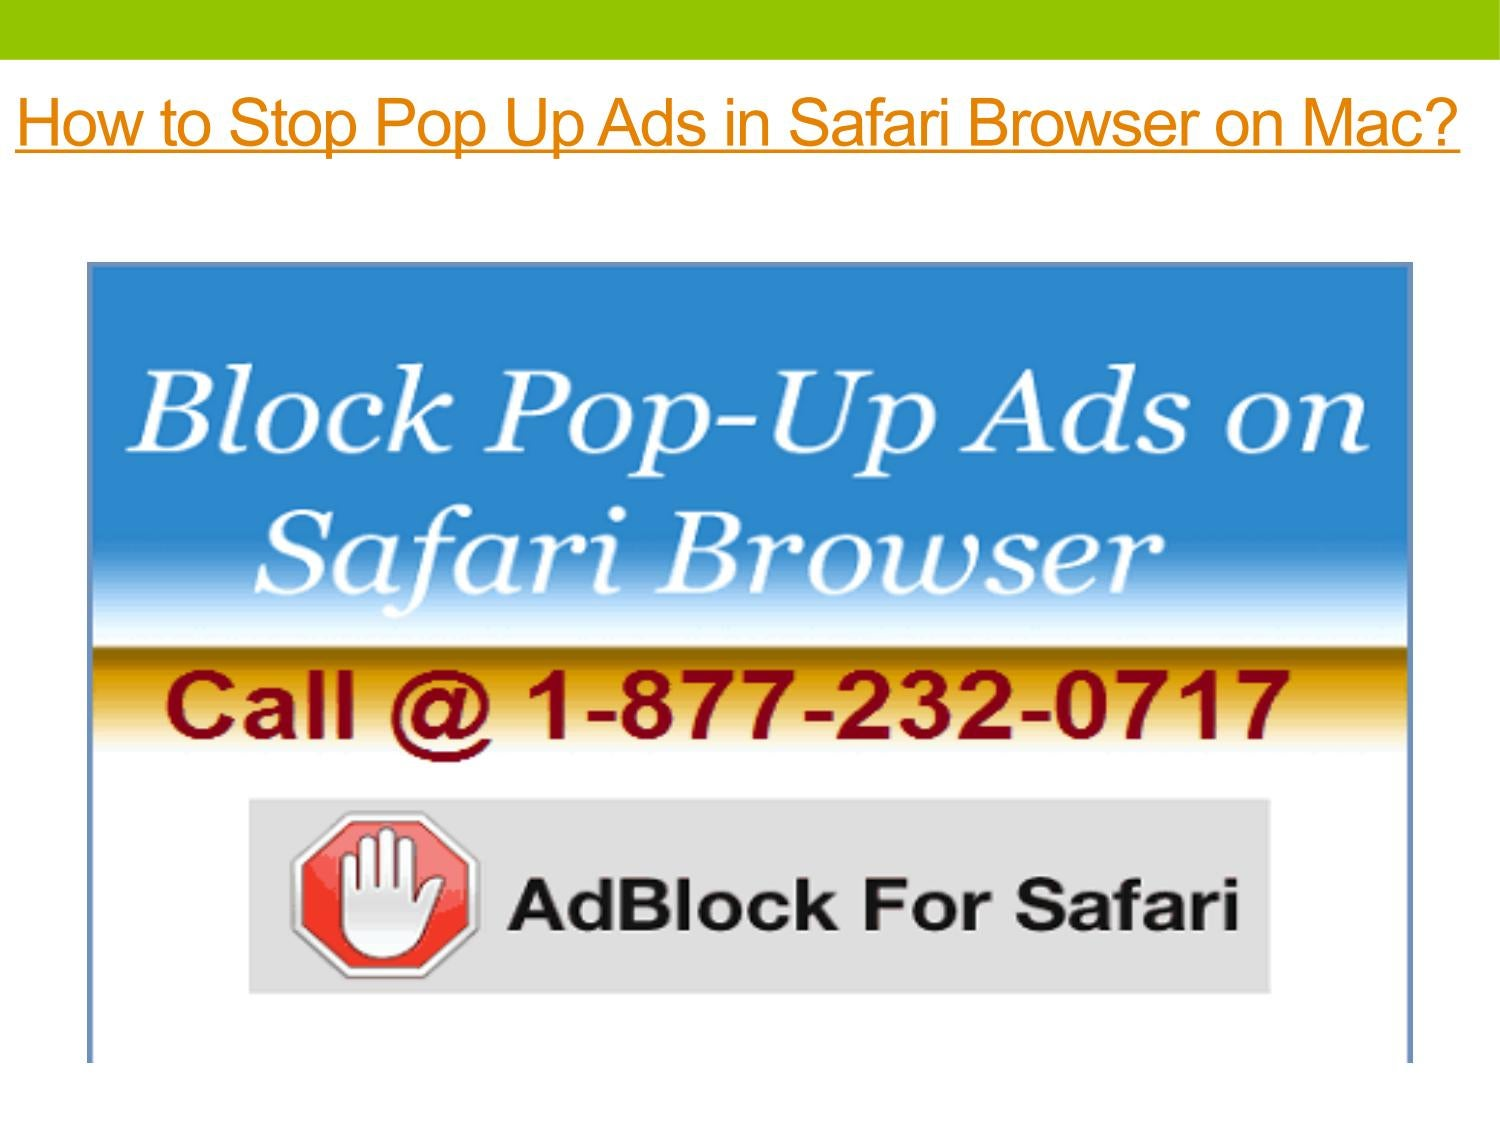 How to Stop Pop Up Ads in Safari Browser on Mac? by Mac Tech